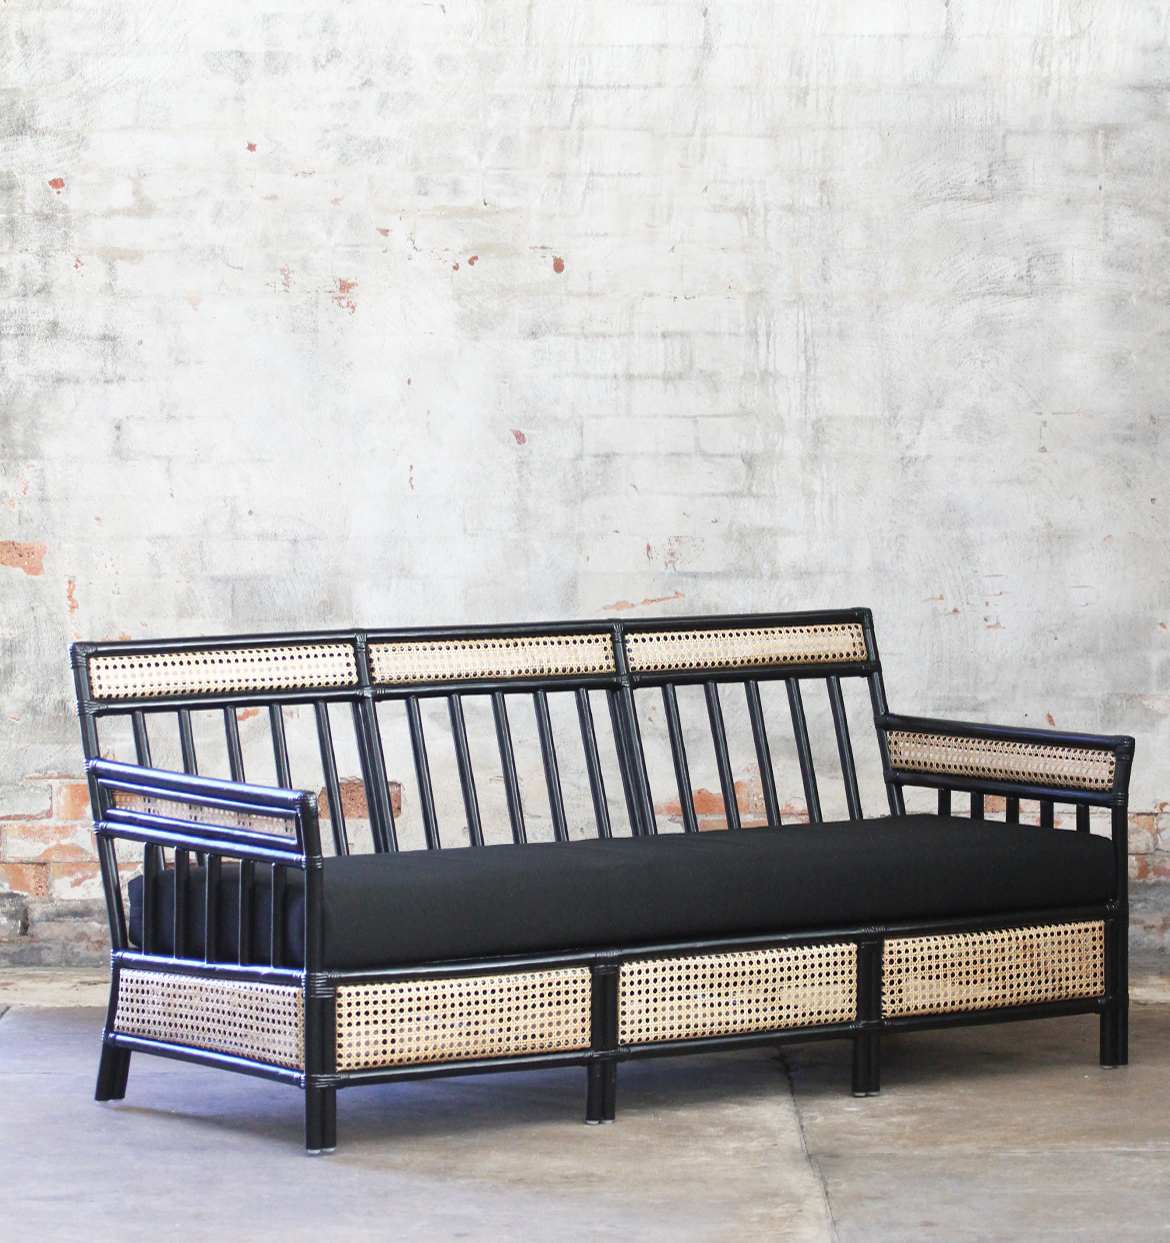 Hand Canned 3 seater lounge